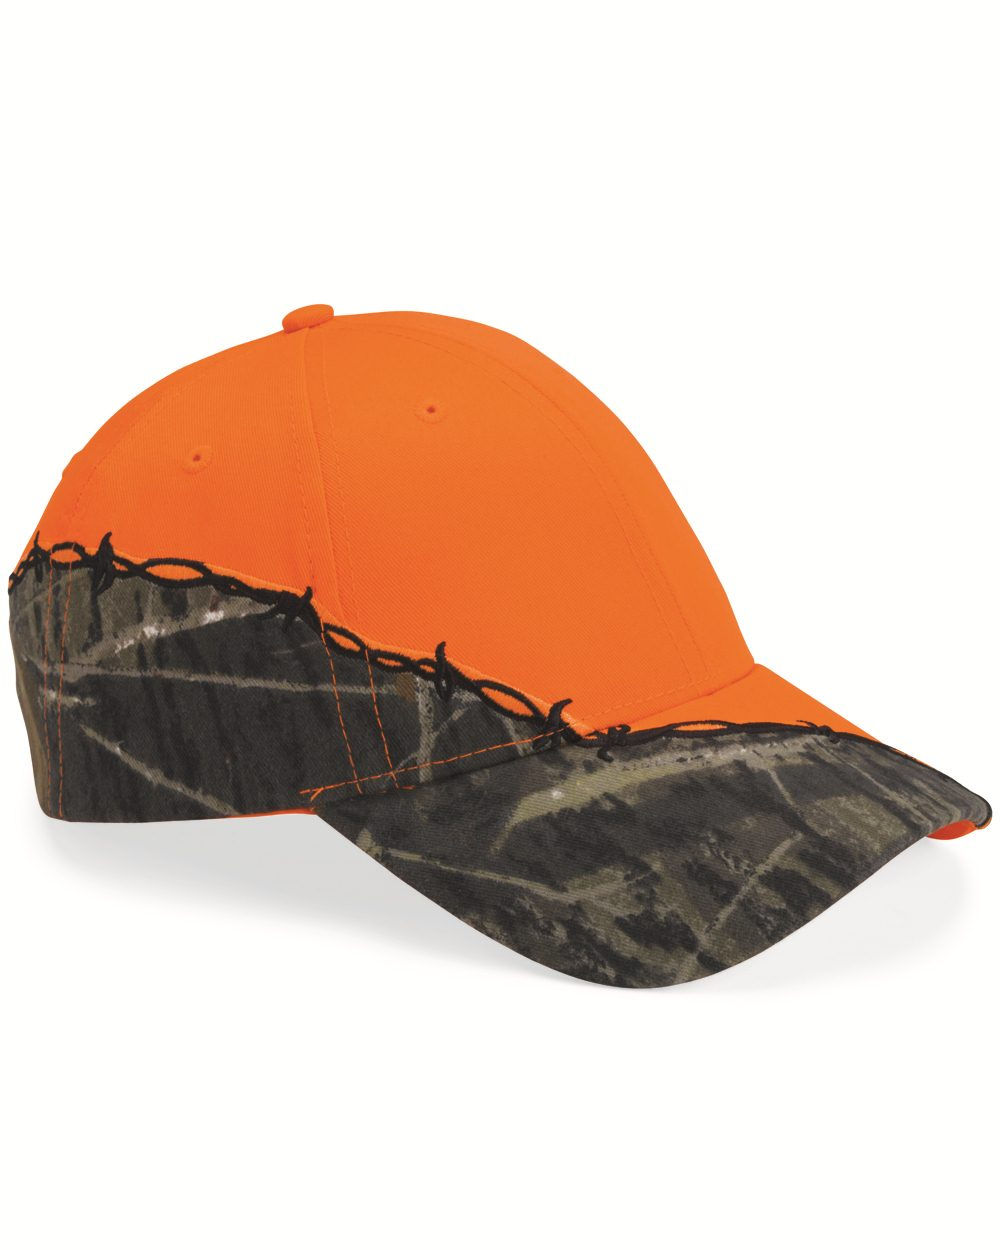 Kati LC4BW-Licensed Camo Cap with Barbed Wire Embroidery